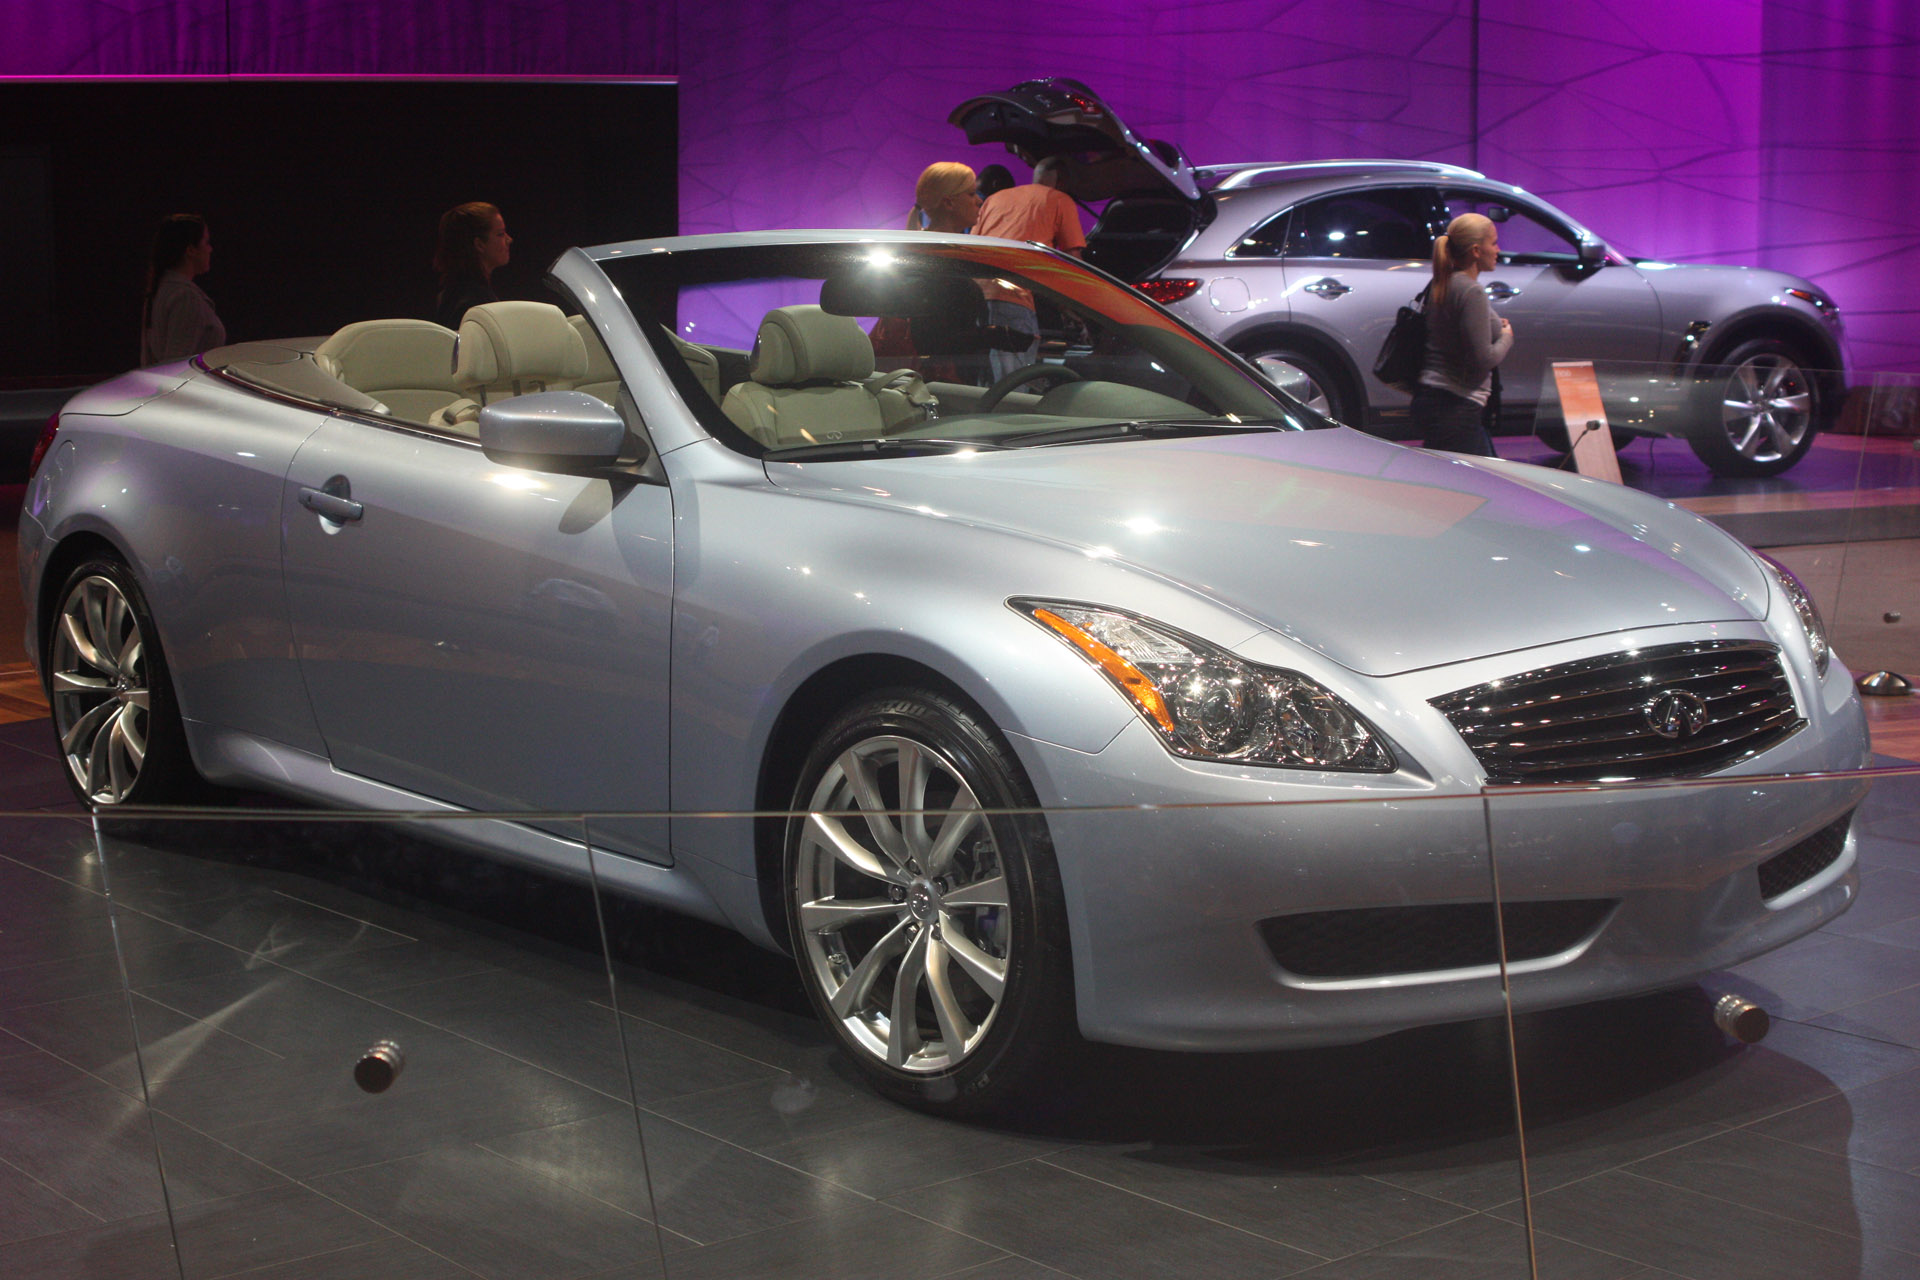 Infiniti G37 Convertible Pictures front full free download image